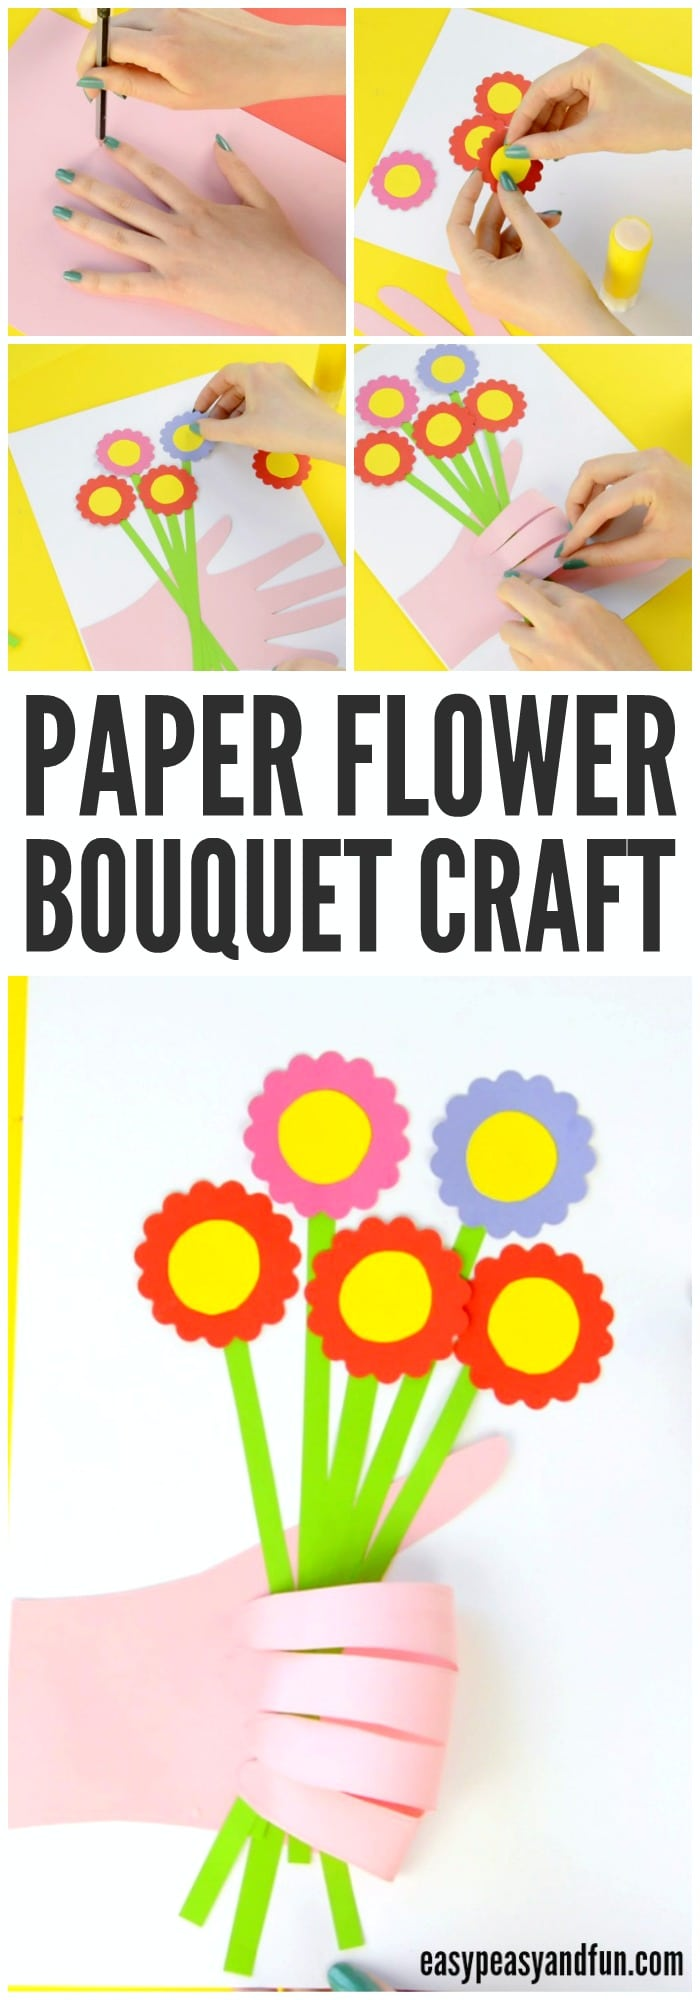 Adorable Handprint Flower Craft for Kids to Make